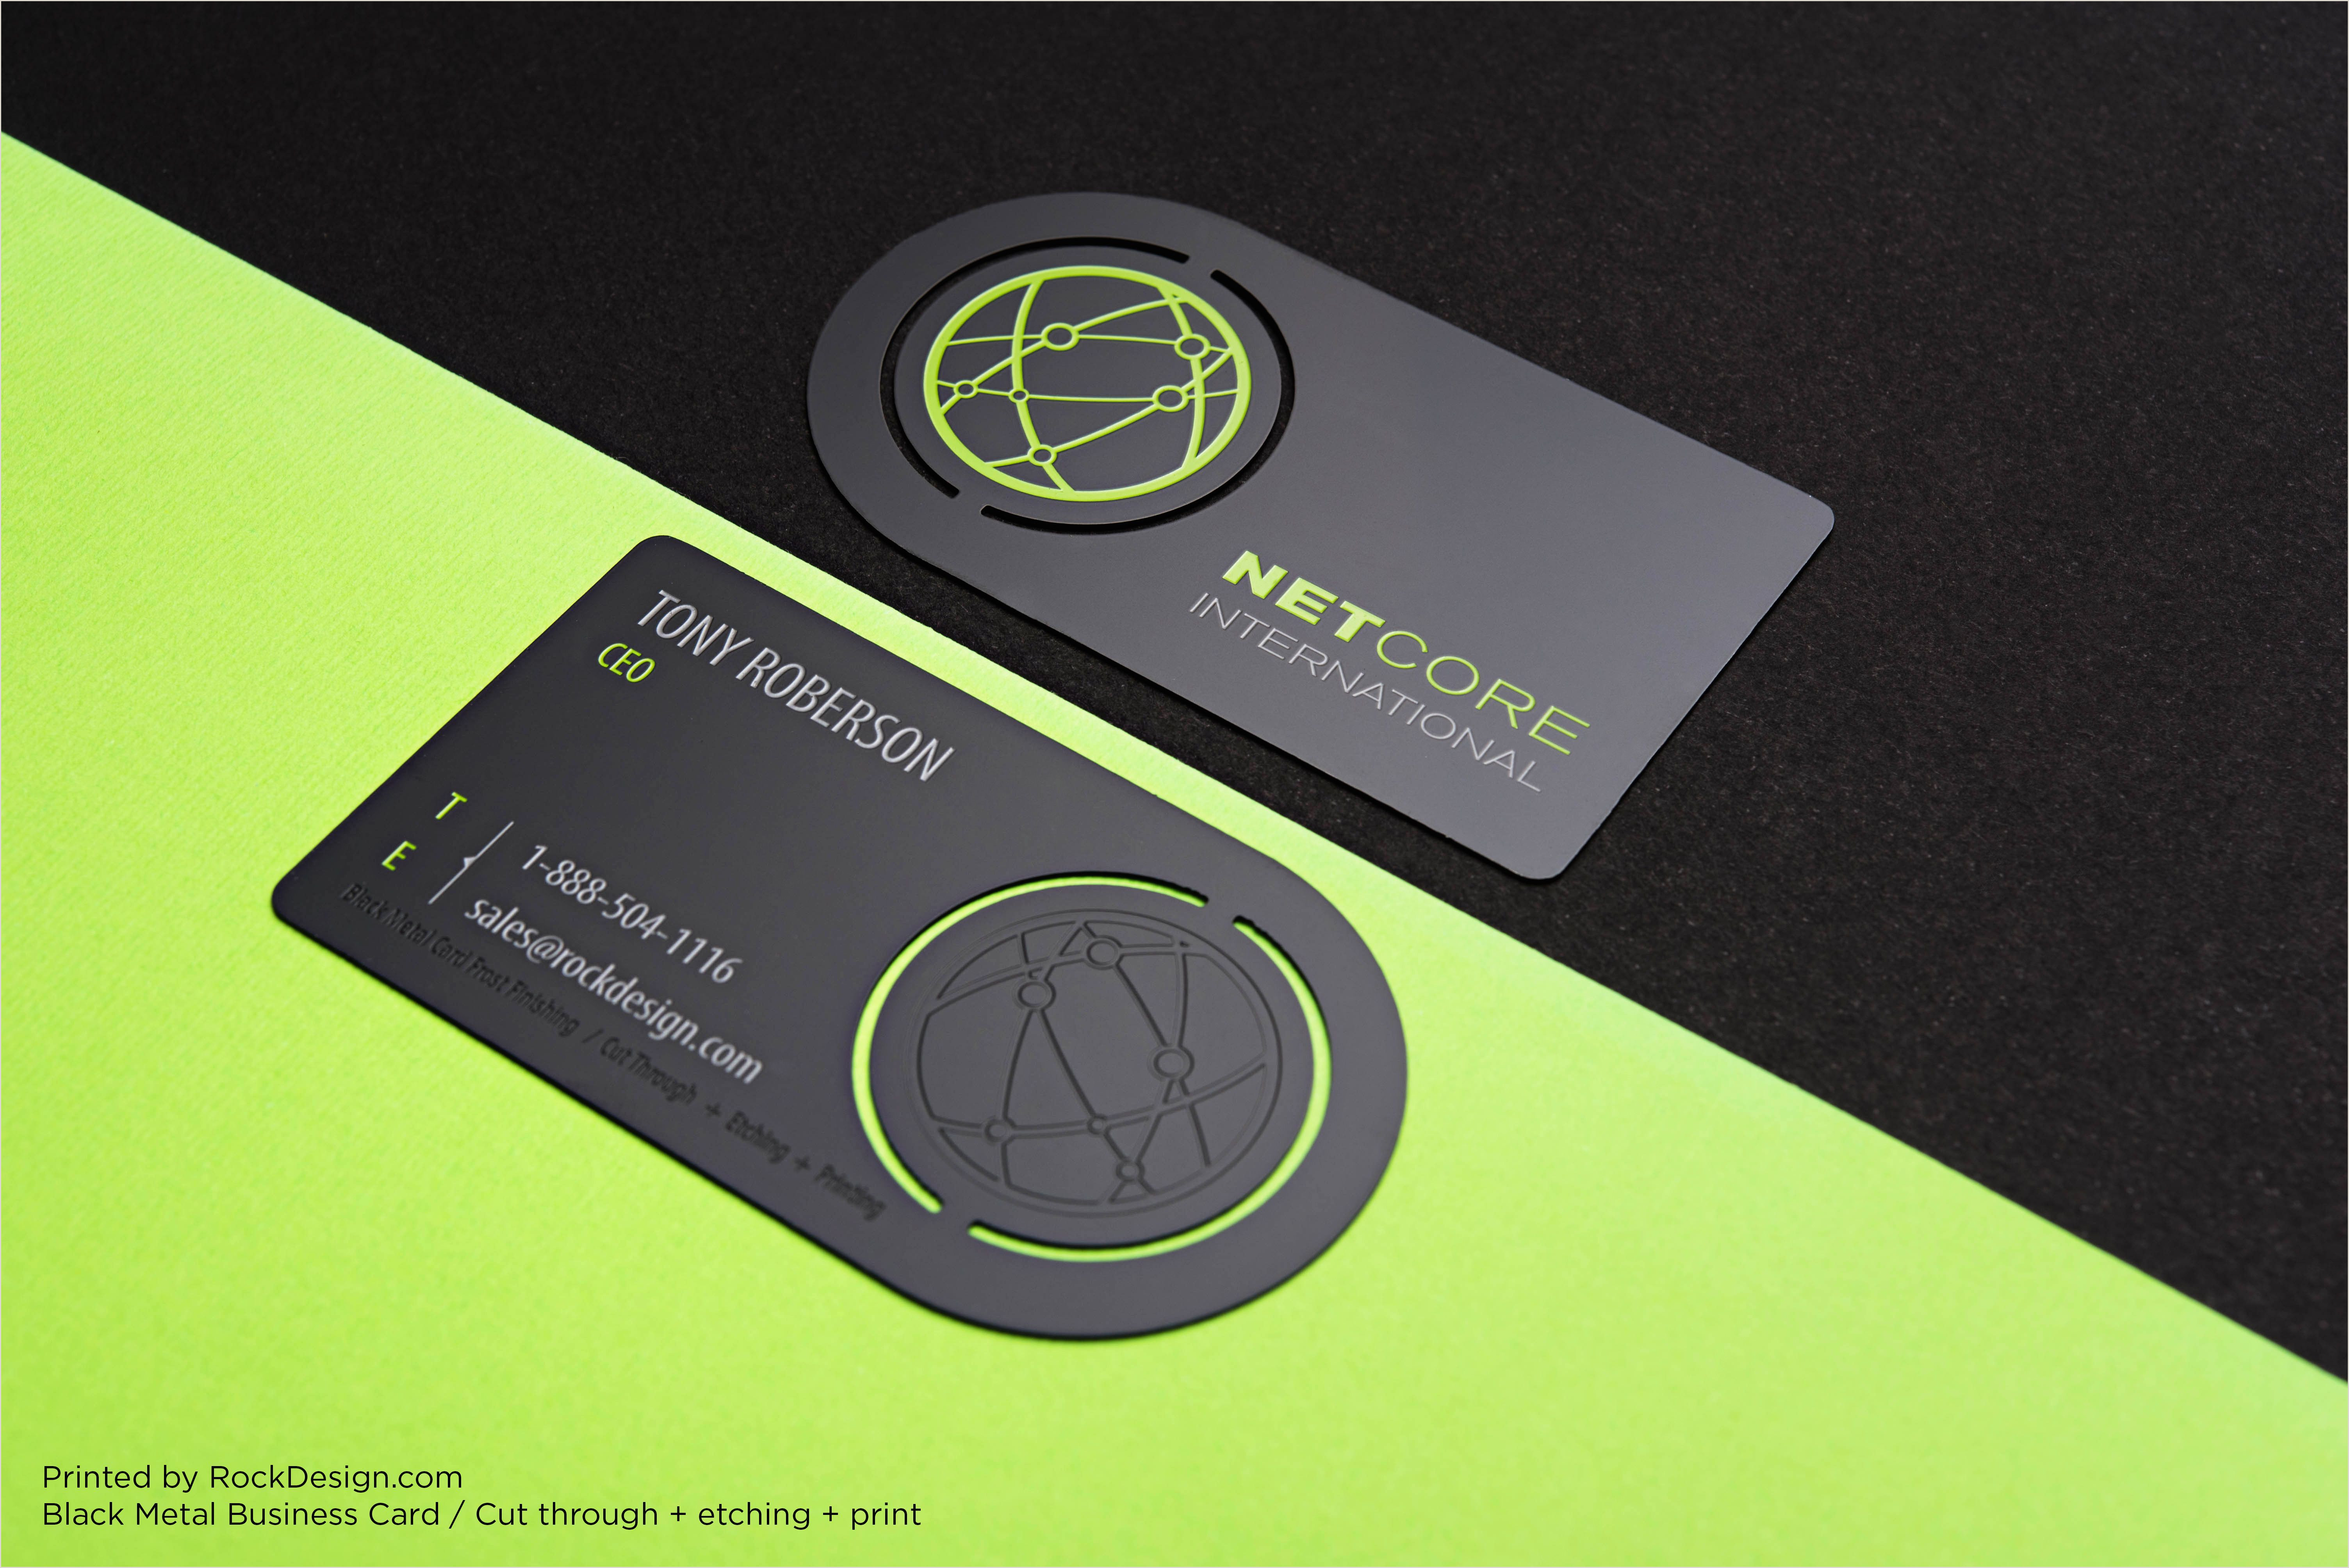 Best Business Cards For Crafters Black Metal Business Cards By Rockdesign